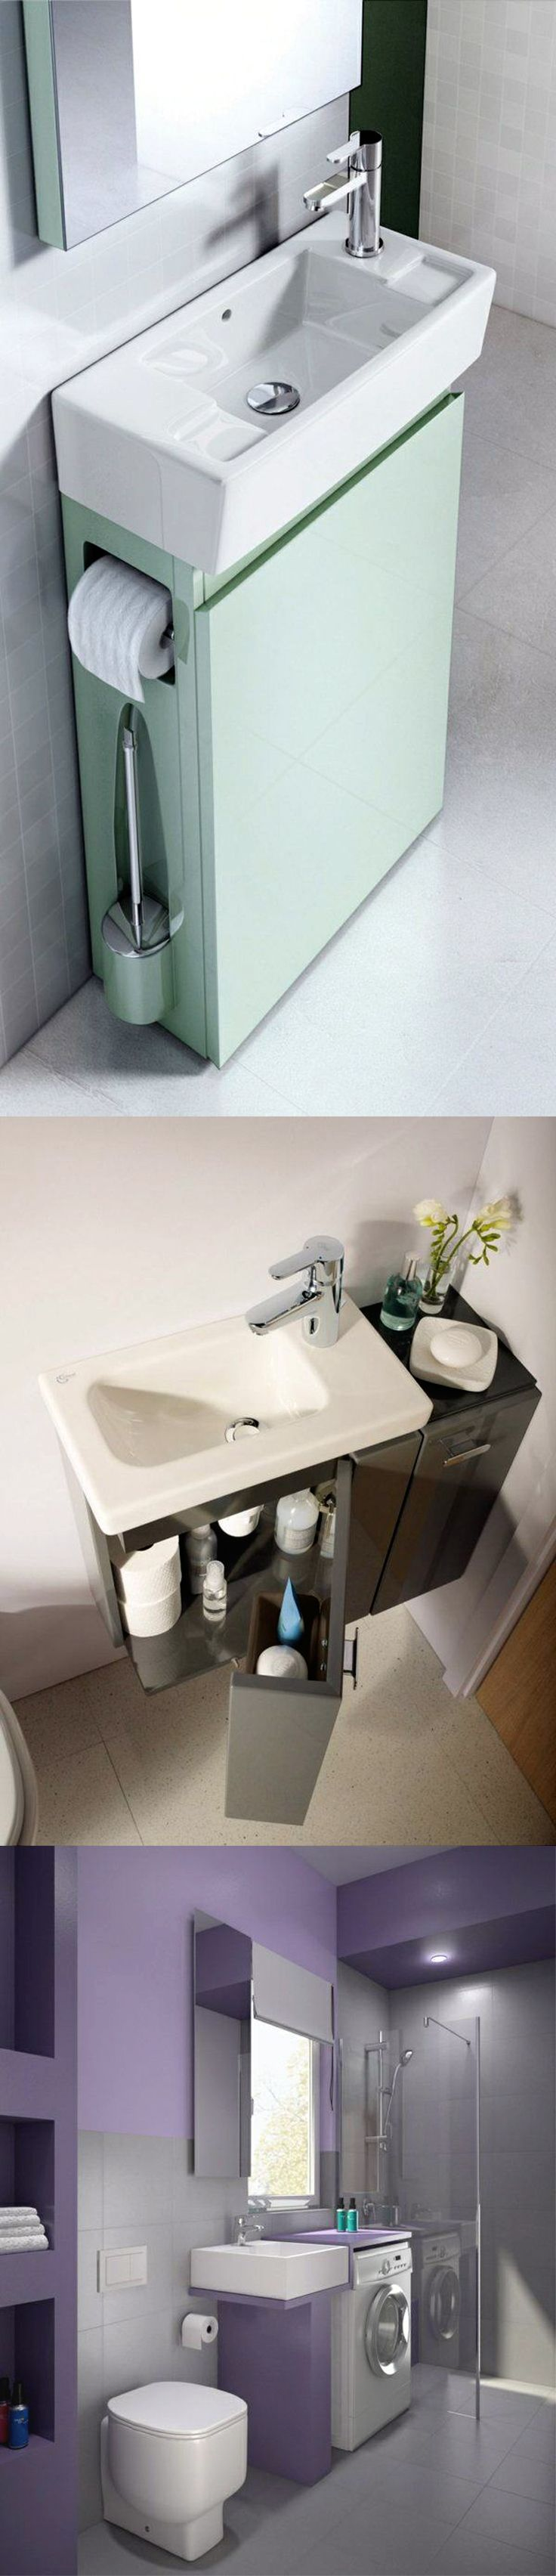 Badezimmer Ideen Platzsparend Small Bathroom Ideas Space Saving Modern Bathroom Furniture